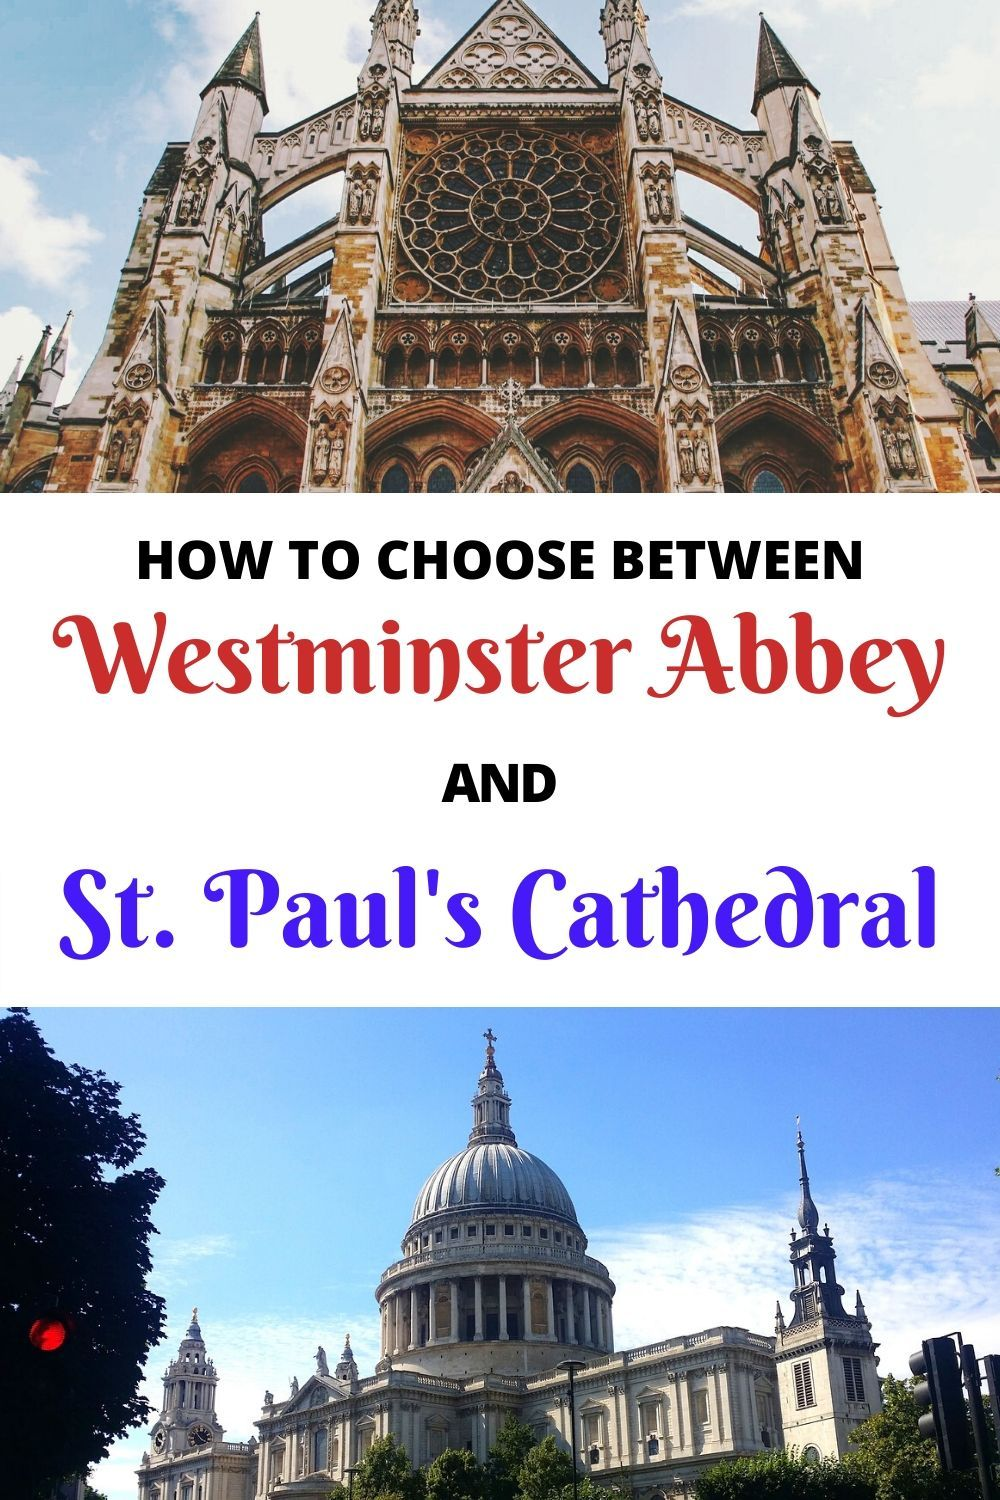 Westminster Abbey and St. Paul's Cathedral are the two major cathedrals in London, England.  A lot of tourists don't have time to visit both Westminster Abbey and St. Paul's Cathedral while in London, and it can be difficult to decide which cathedral you should visit while in London.  Click through for a comprehensive guide on how to choose between Westminster Abbey and St. Paul's Cathedral. #WestinsterAbbey #StPaulsCathedral #London #LondonTourism #TravelLondon #LondonSightseeing